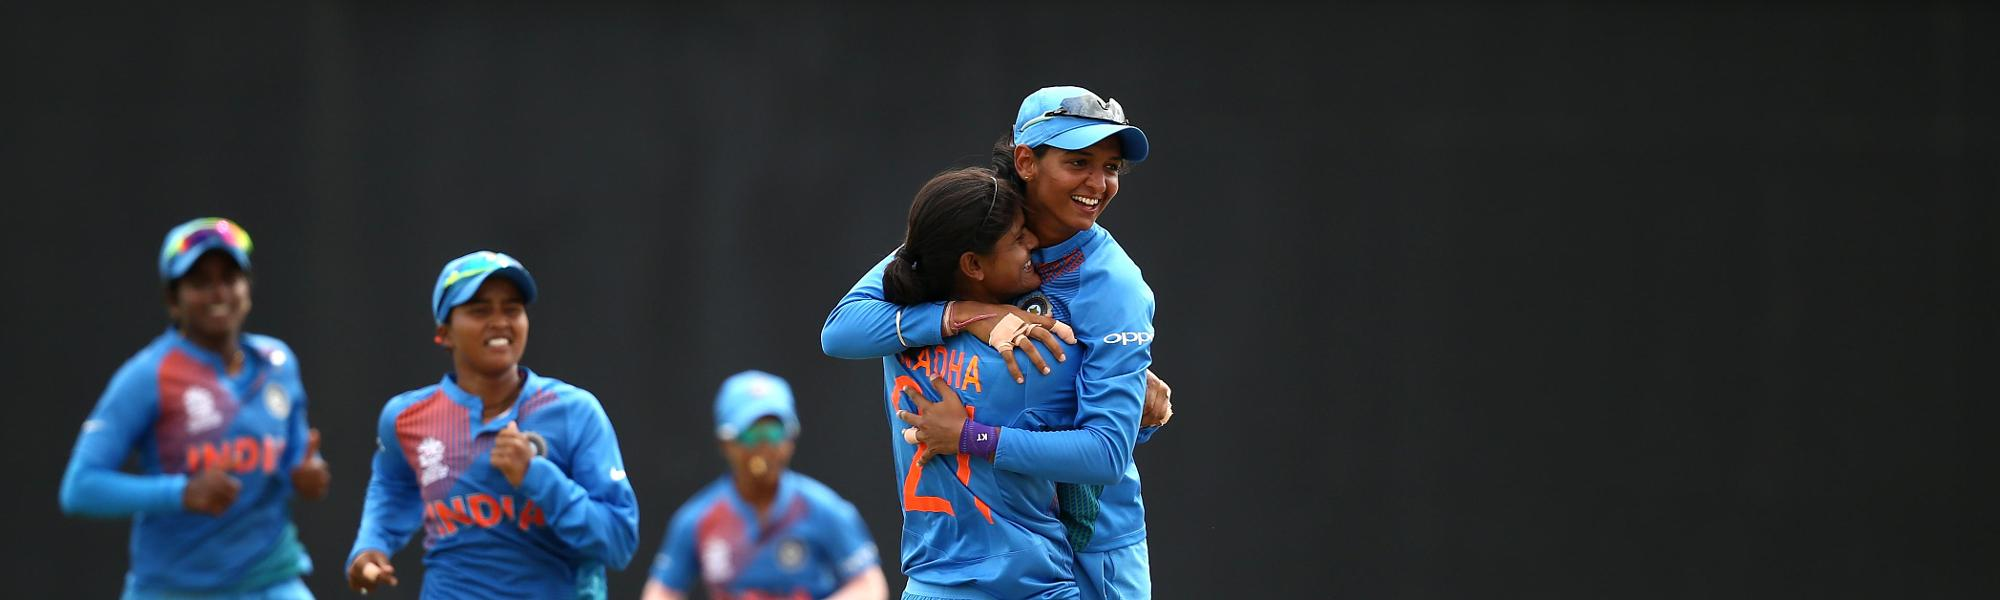 Radha Yadav of India celebrates a wicket with captain Harmanpreet Kaur during the ICC Women's World T20 2018 match between India and Australia at Guyana National Stadium on November 17, 2018 in Providence, Guyana.